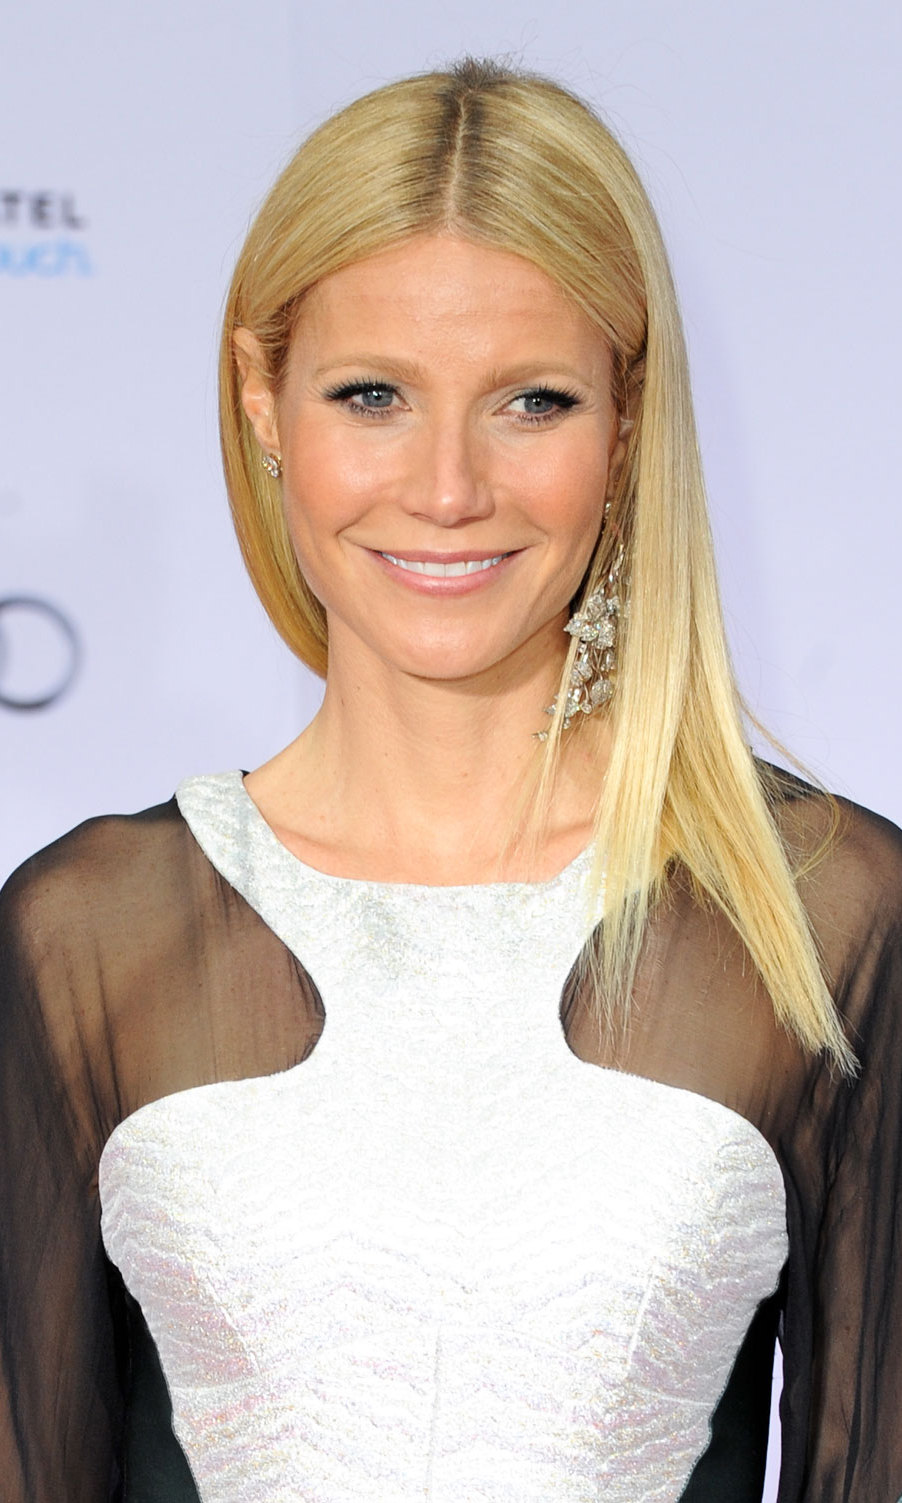 Gwyneth and Chris are set to celebrate their ten year wedding anniversary in December. Photo © Getty Images